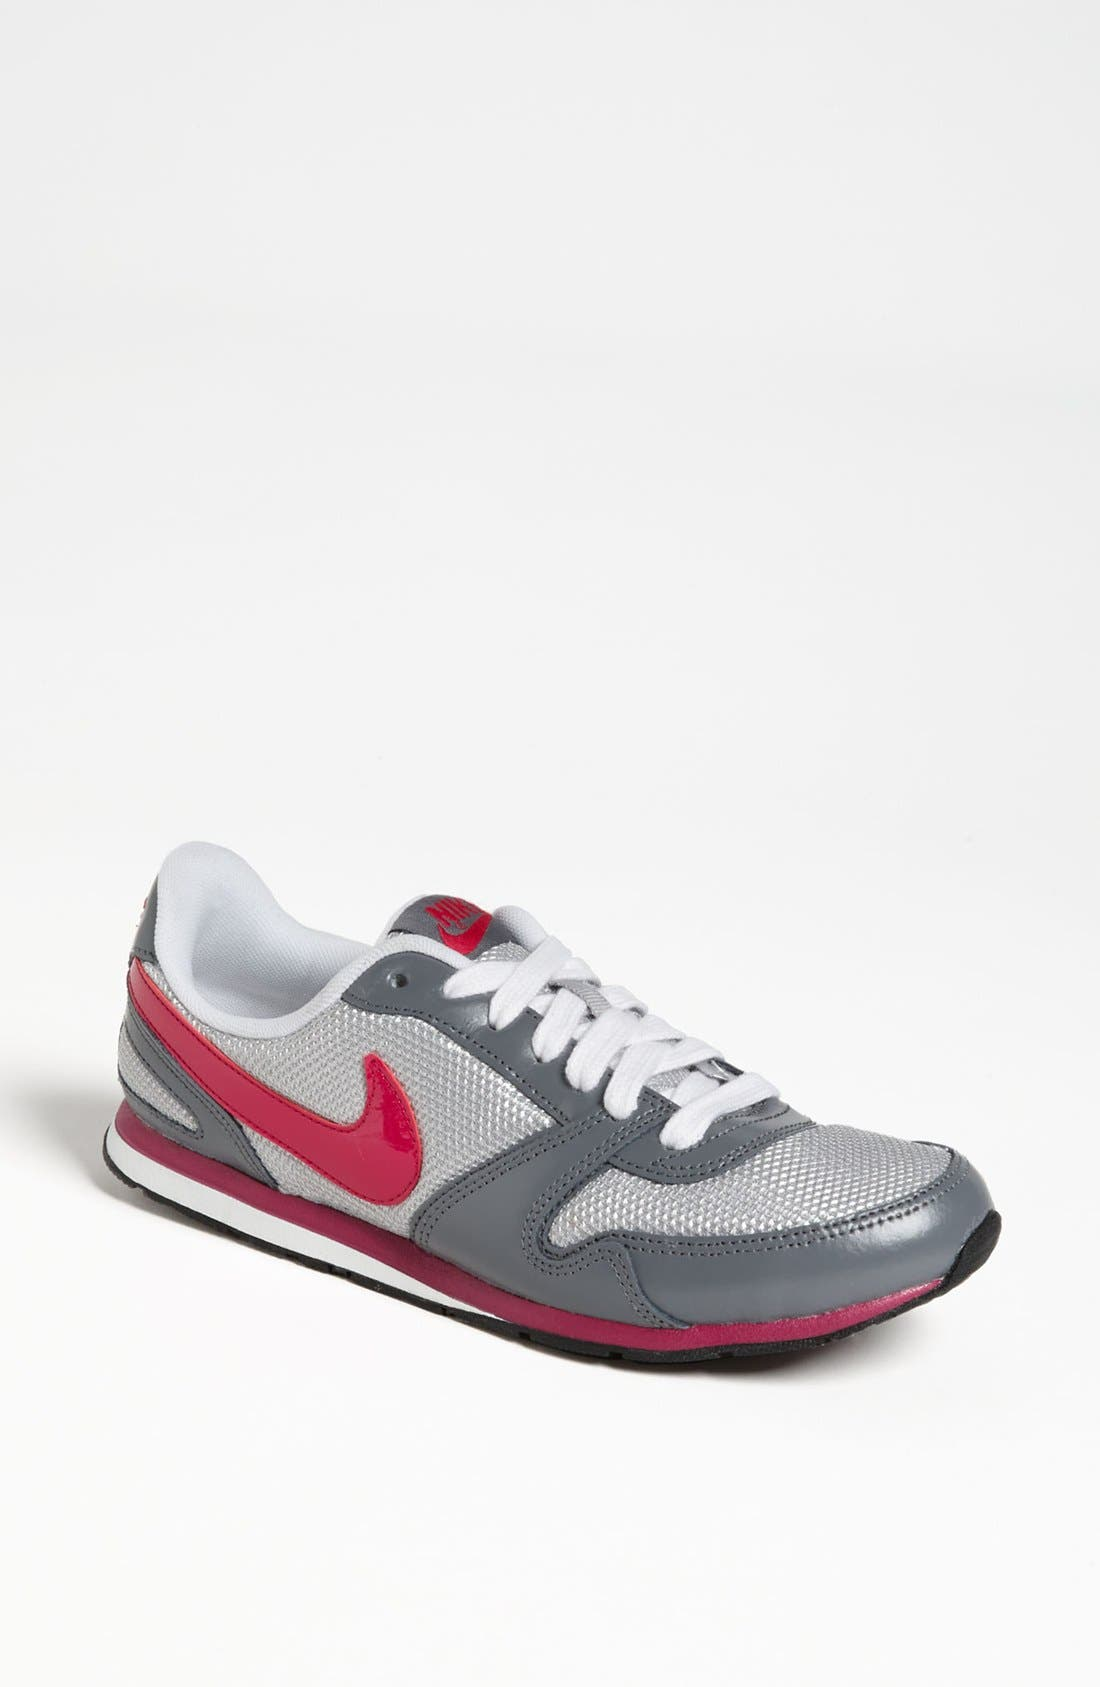 Alternate Image 1 Selected - Nike 'Eclipse II' Sneaker (Women)